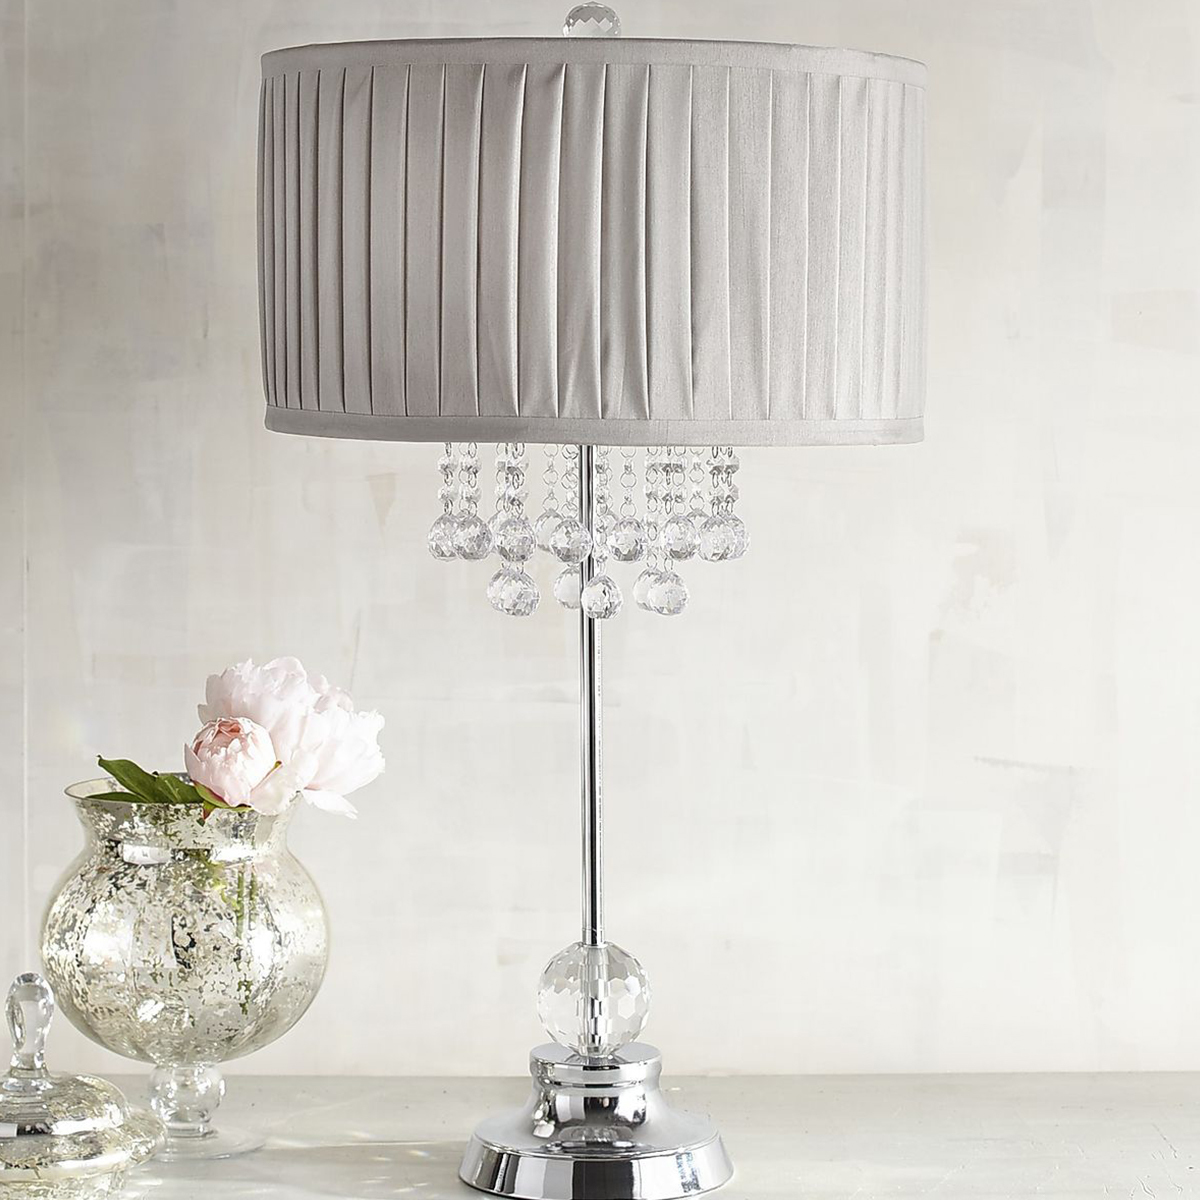 Table lamp with pleated shade and hanging crystals photo